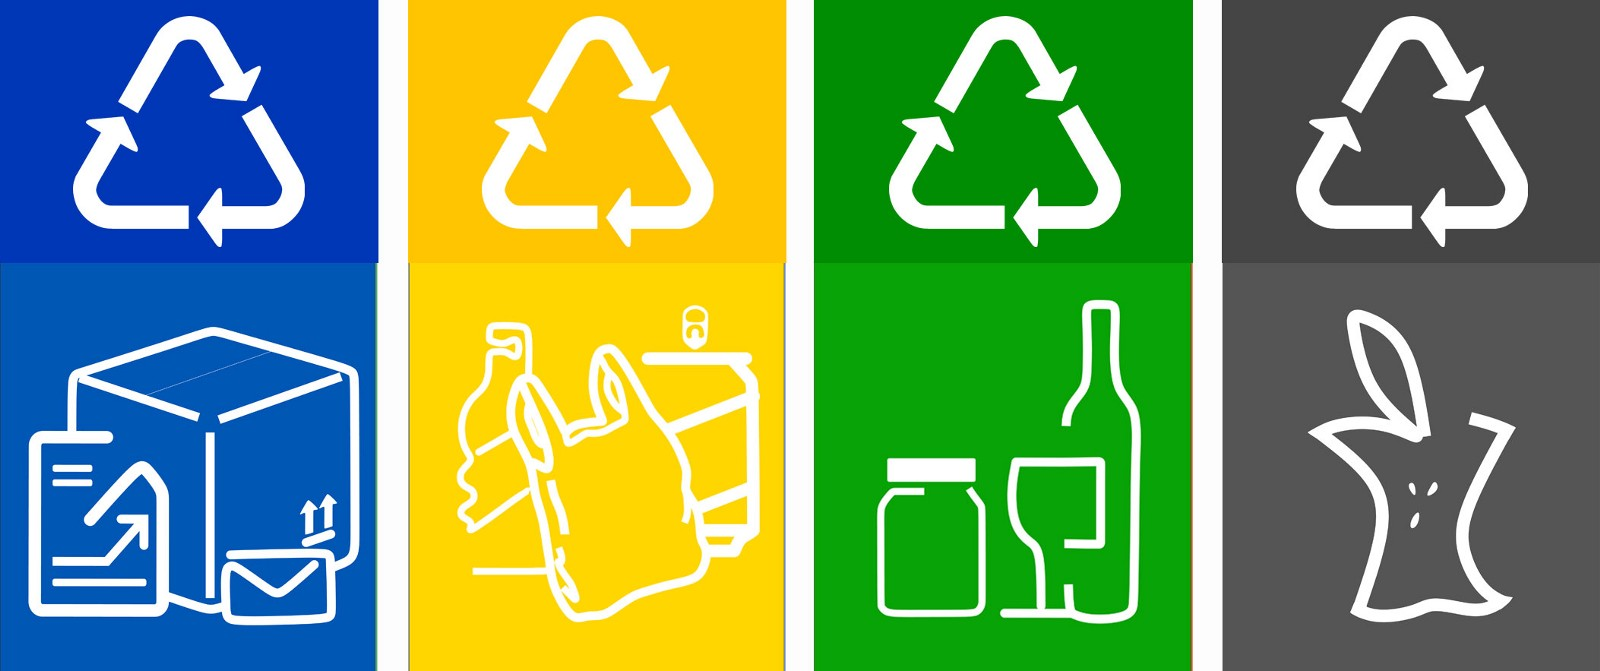 This is a picture of Current Printable Recycling Signs for Bins